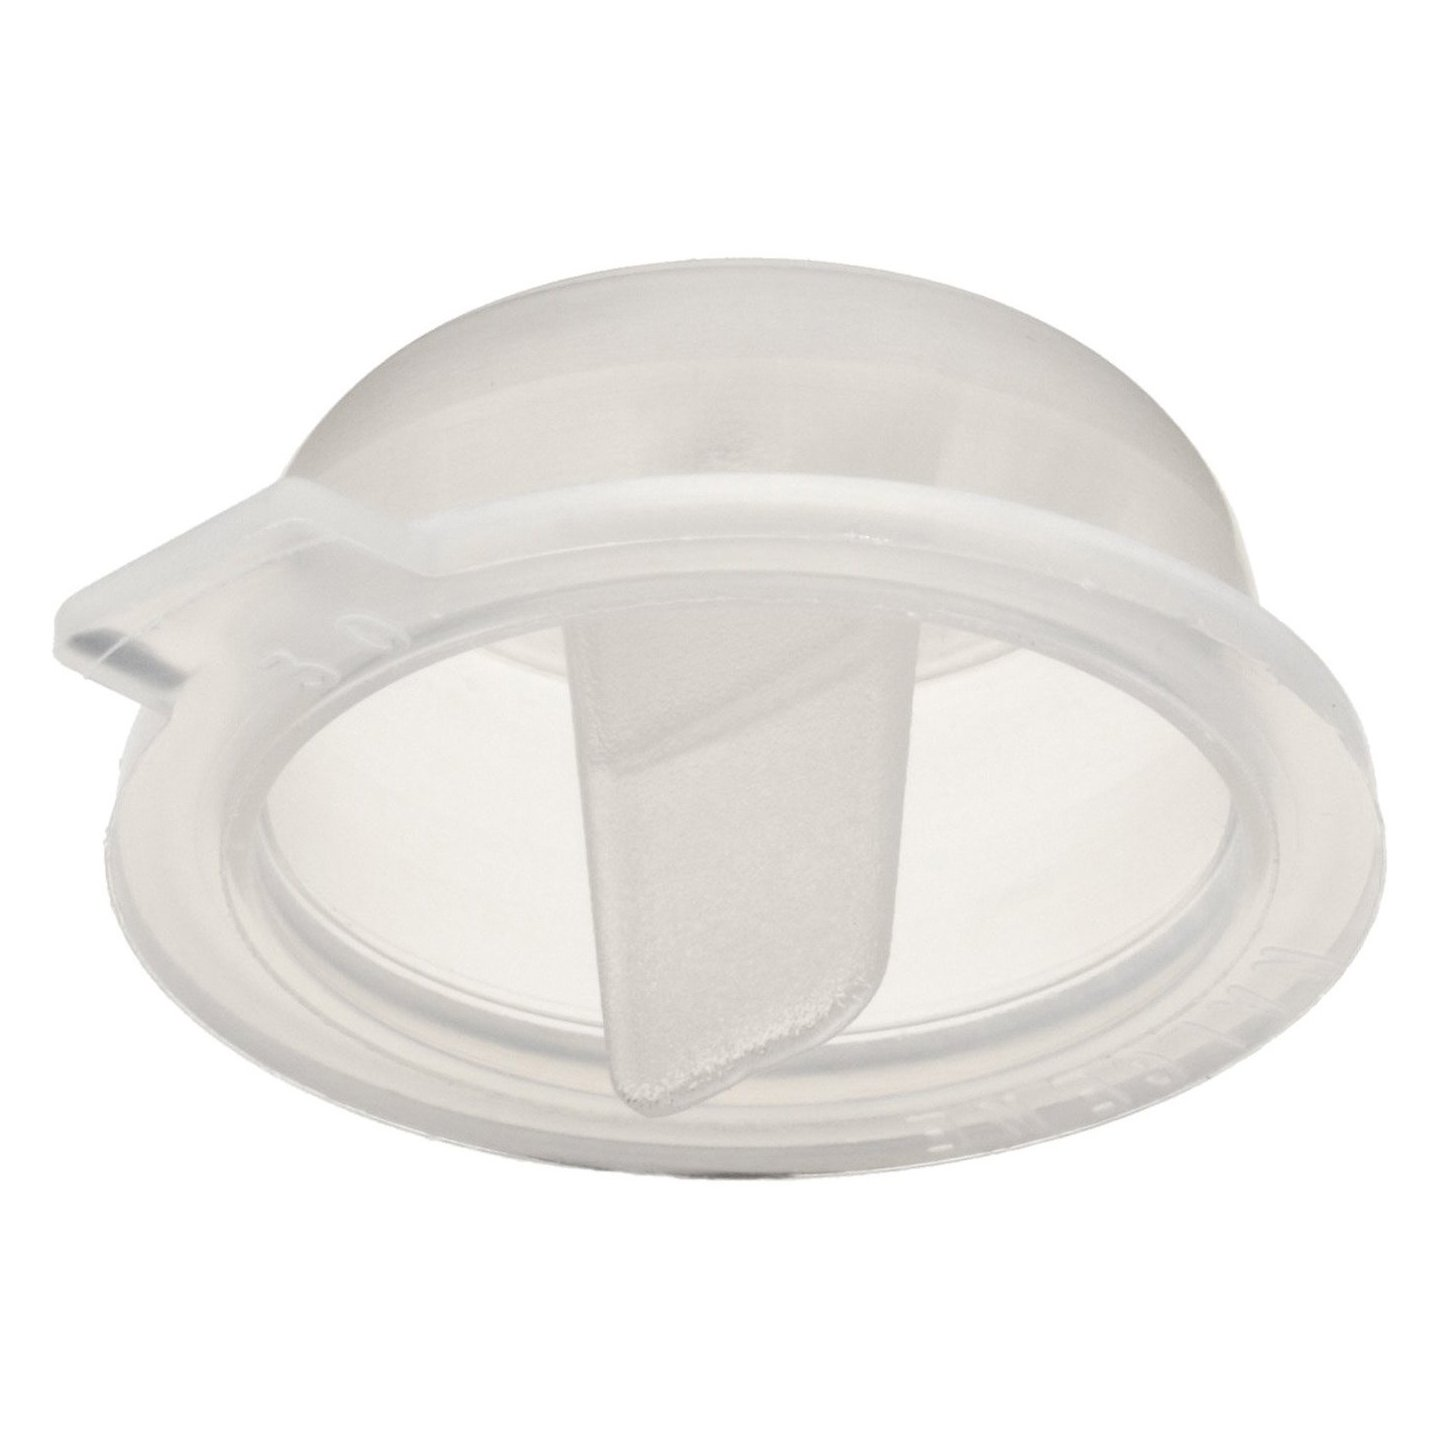 Nalgene DS3111-0025 Polypropylene Friction-fit Centrifuge Tube Closure (Case of 20)